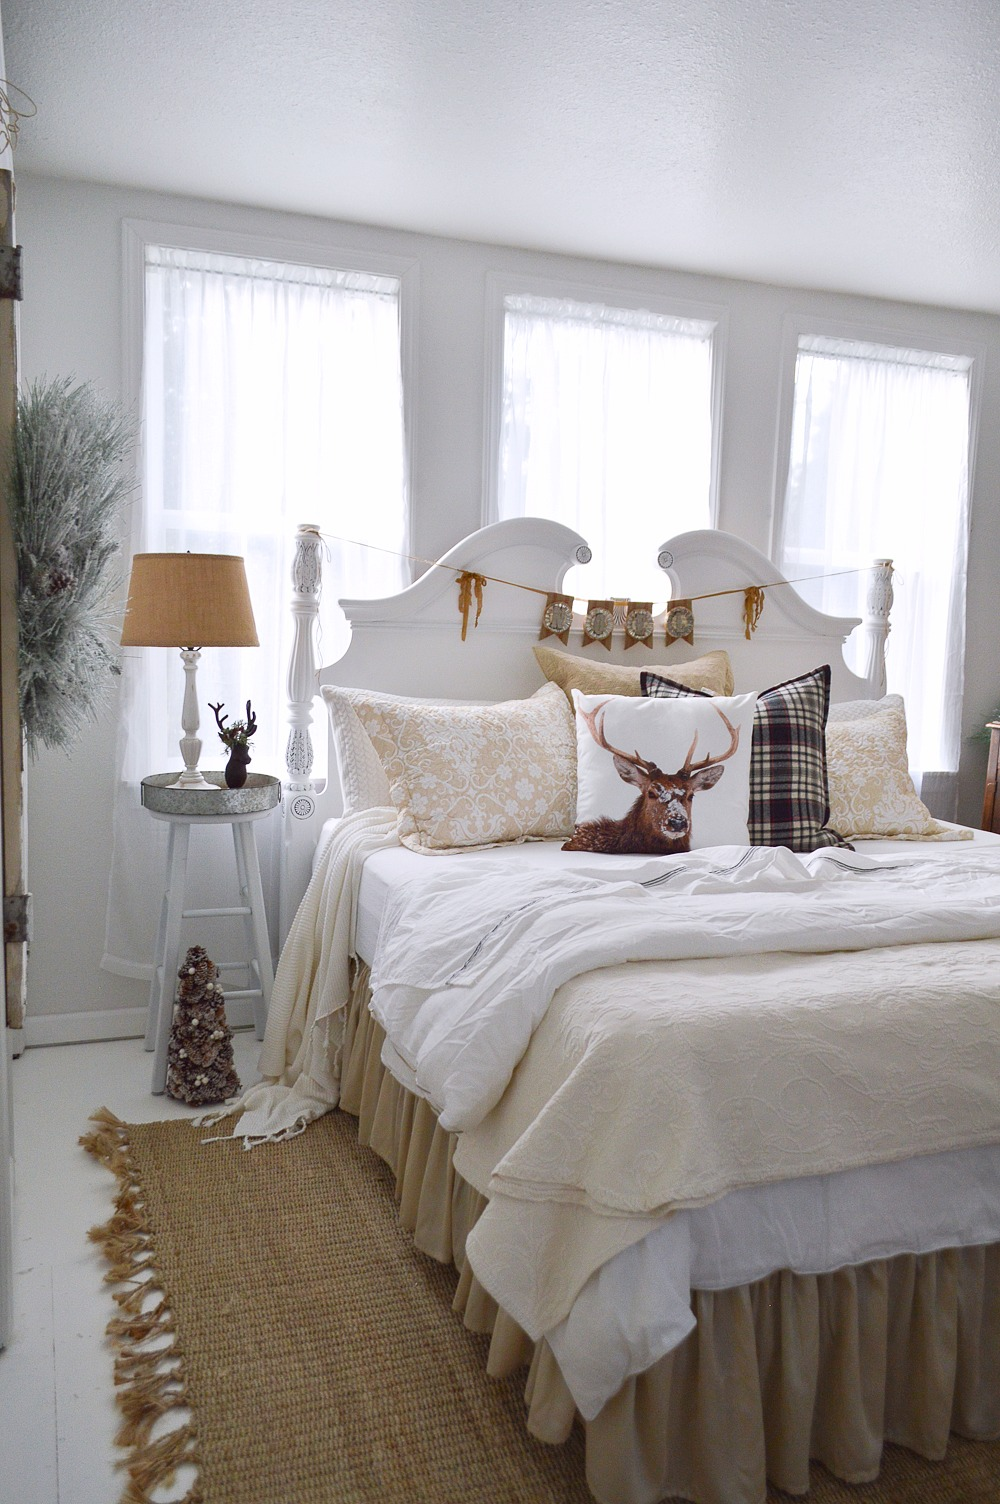 Merry Christmas Guest Bedroom at The Little Cottage foxhollowcottage.com Cream, Ivory and Winter White Bedding, with DIY Painted Wood Headboard.